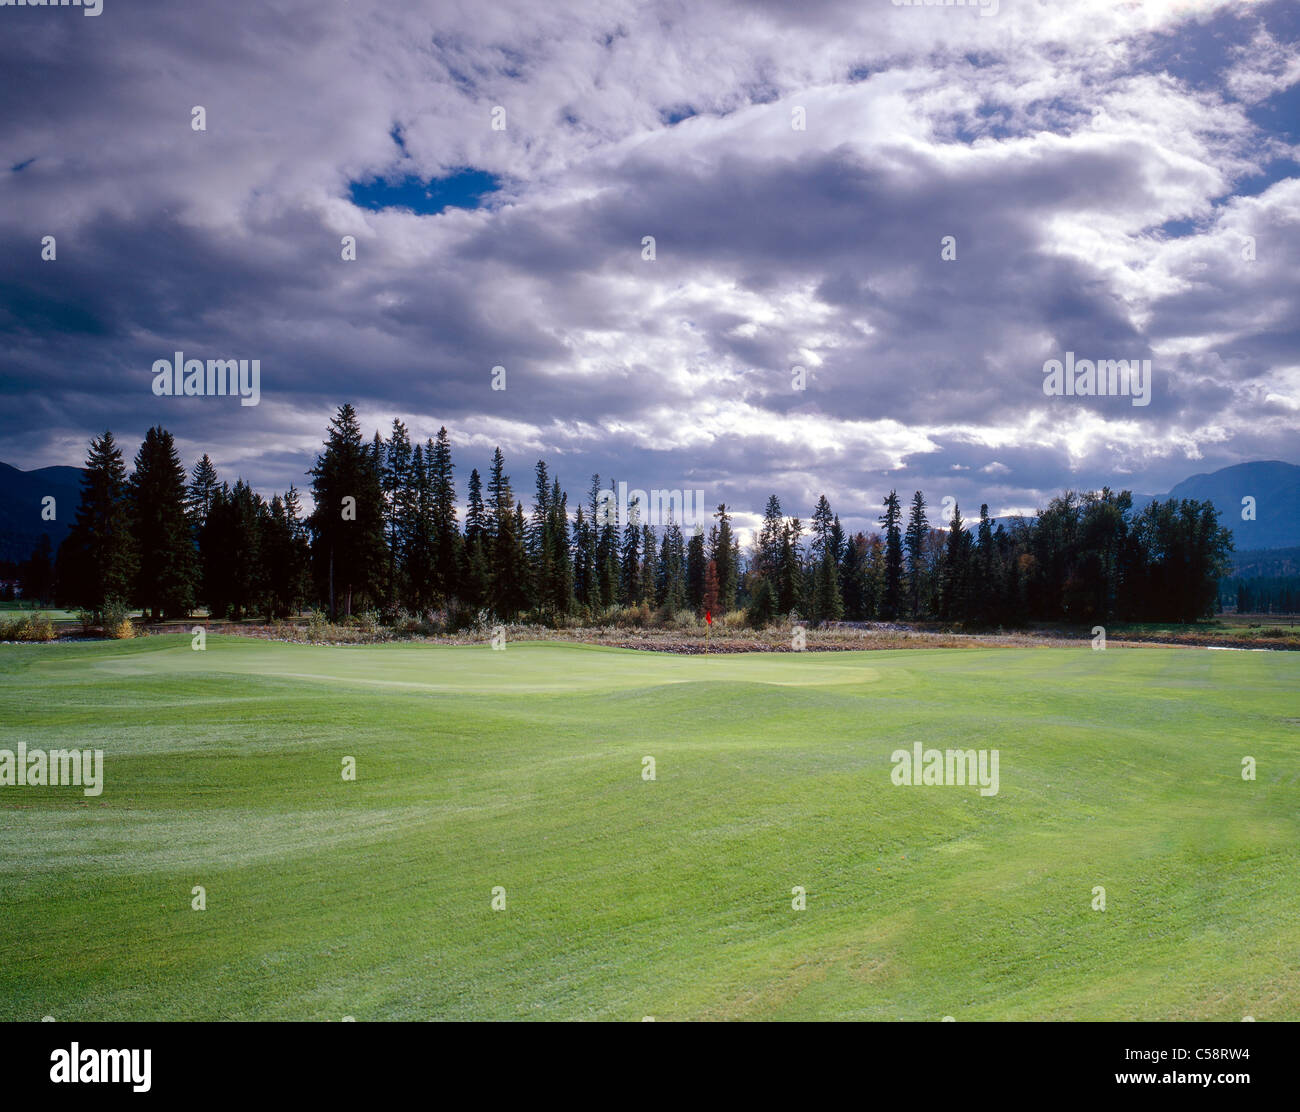 Lush green fairway and green, Riverside Golf Club, Fairmont Hot Springs, British Columbia, Canada. - Stock Image